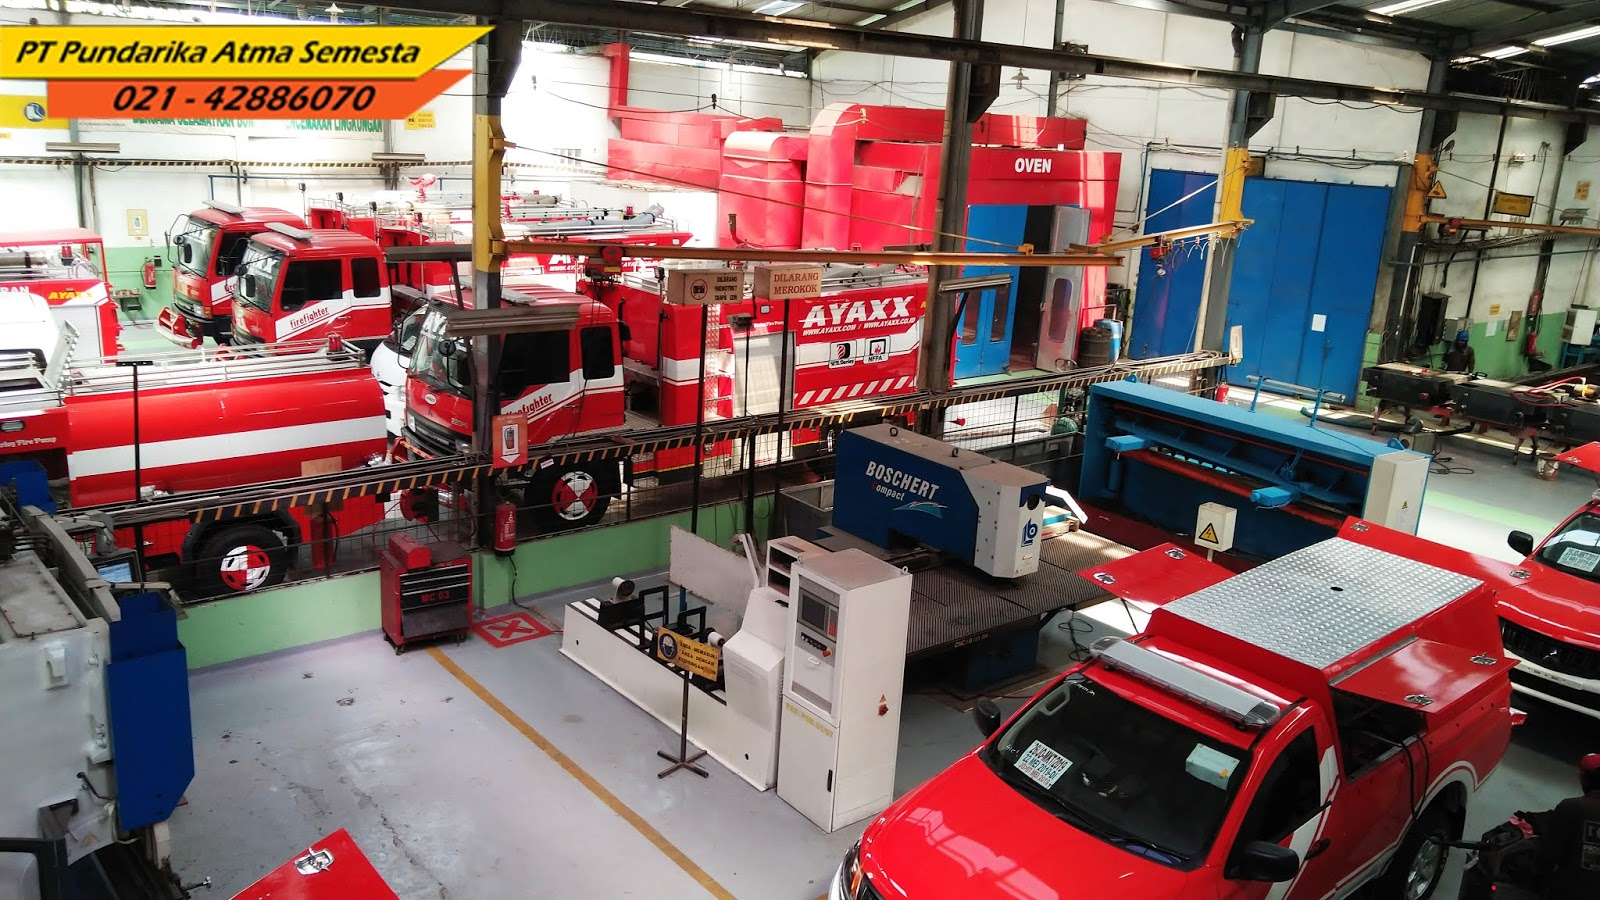 Get acquainted with the AYAXX fire truck from Indonesia.